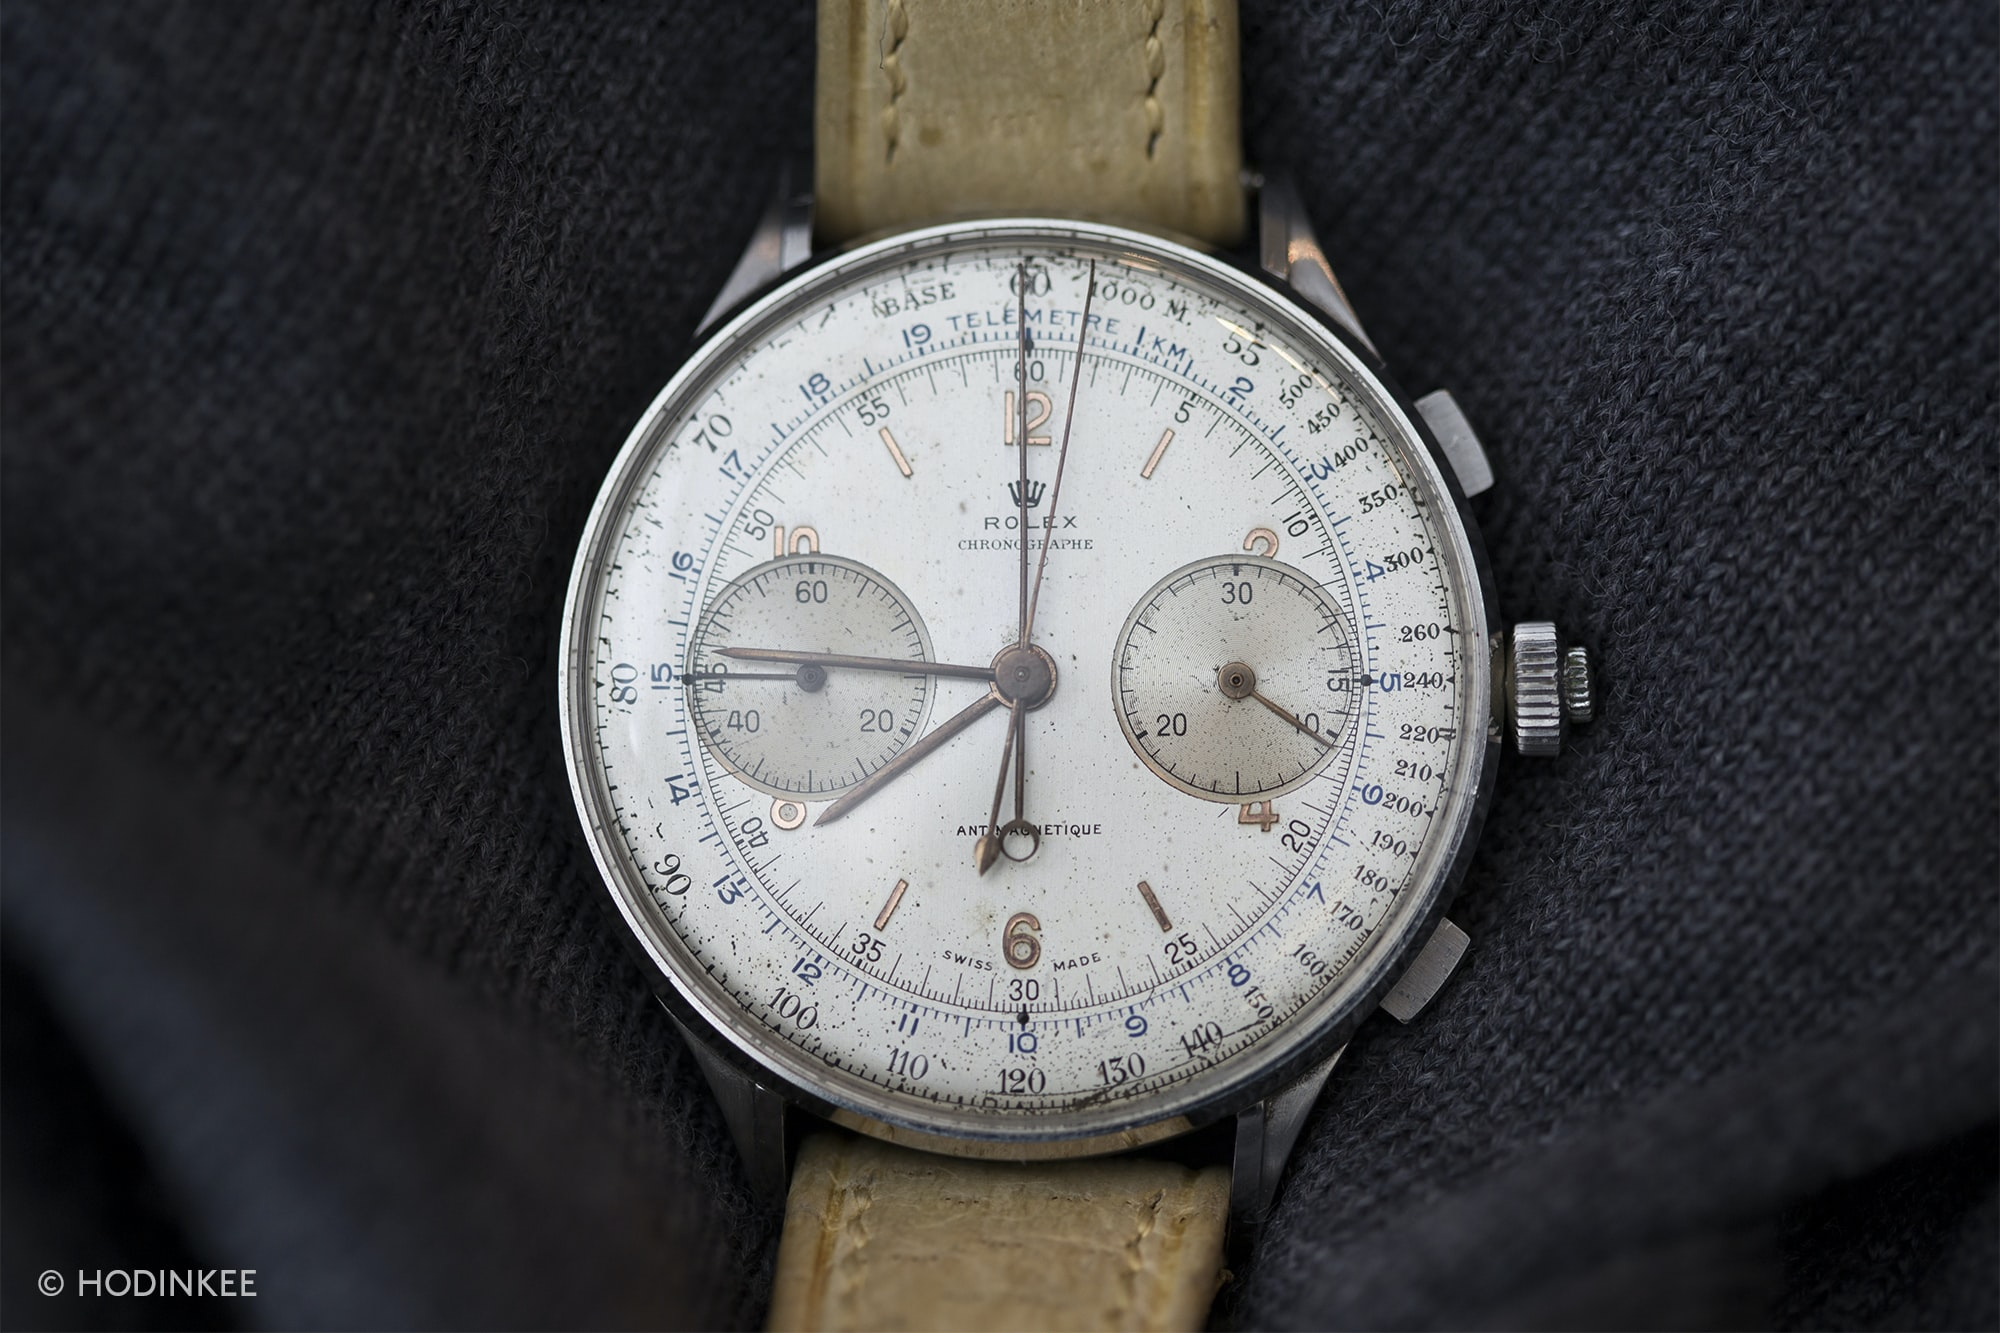 Recapping The 88 Epic Stainless Steel Chronographs Sale At Phillips, A 100% Auction, With Several Massive Hits, Strong Showing From Niche Brands Recapping The 88 Epic Stainless Steel Chronographs Sale At Phillips, A 100% Auction, With Several Massive Hits, Strong Showing From Niche Brands 20019938 copy